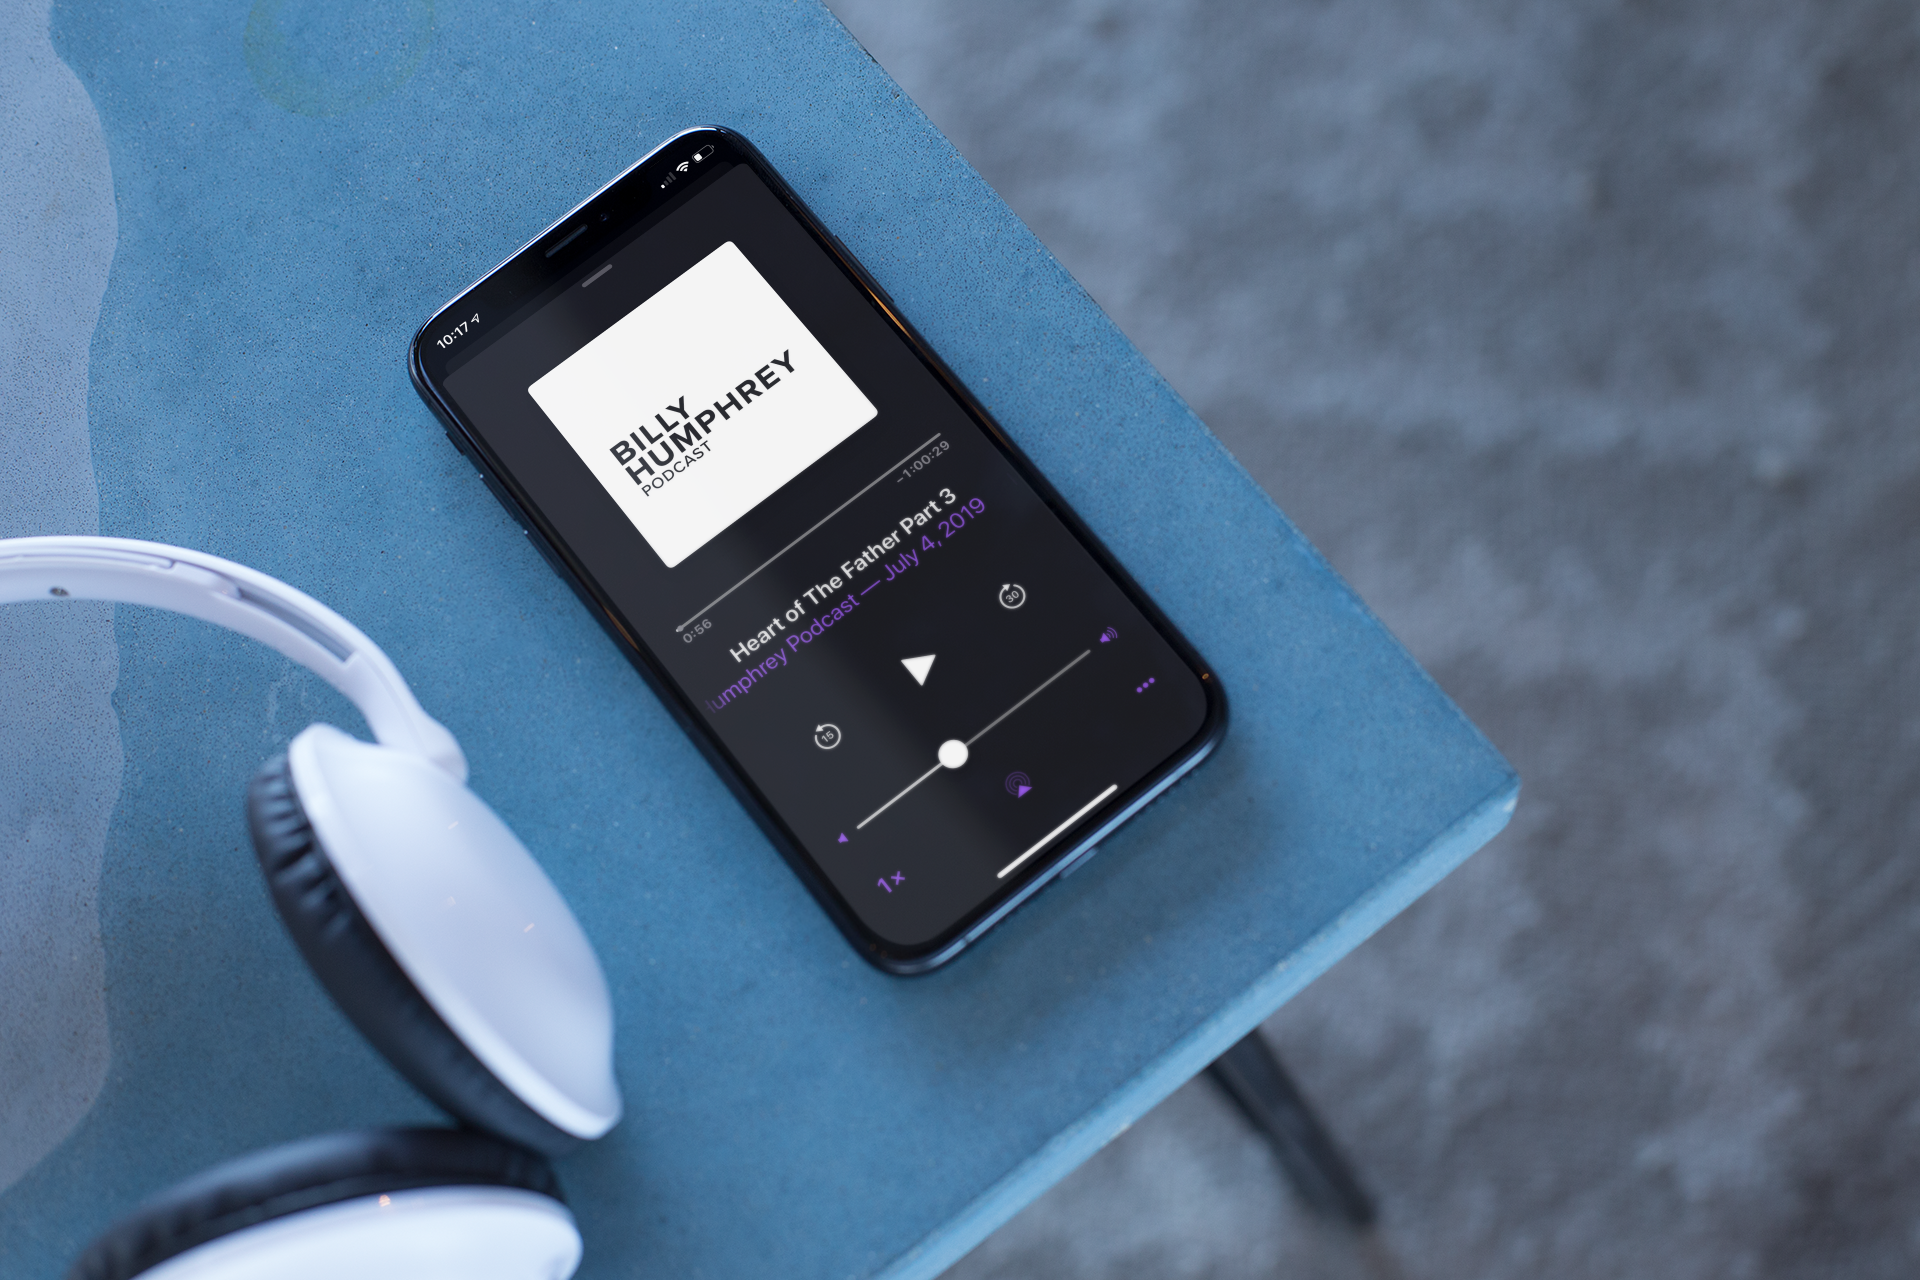 podcast-mockup-featuring-an-iphone-x-on-a-table-24795.png